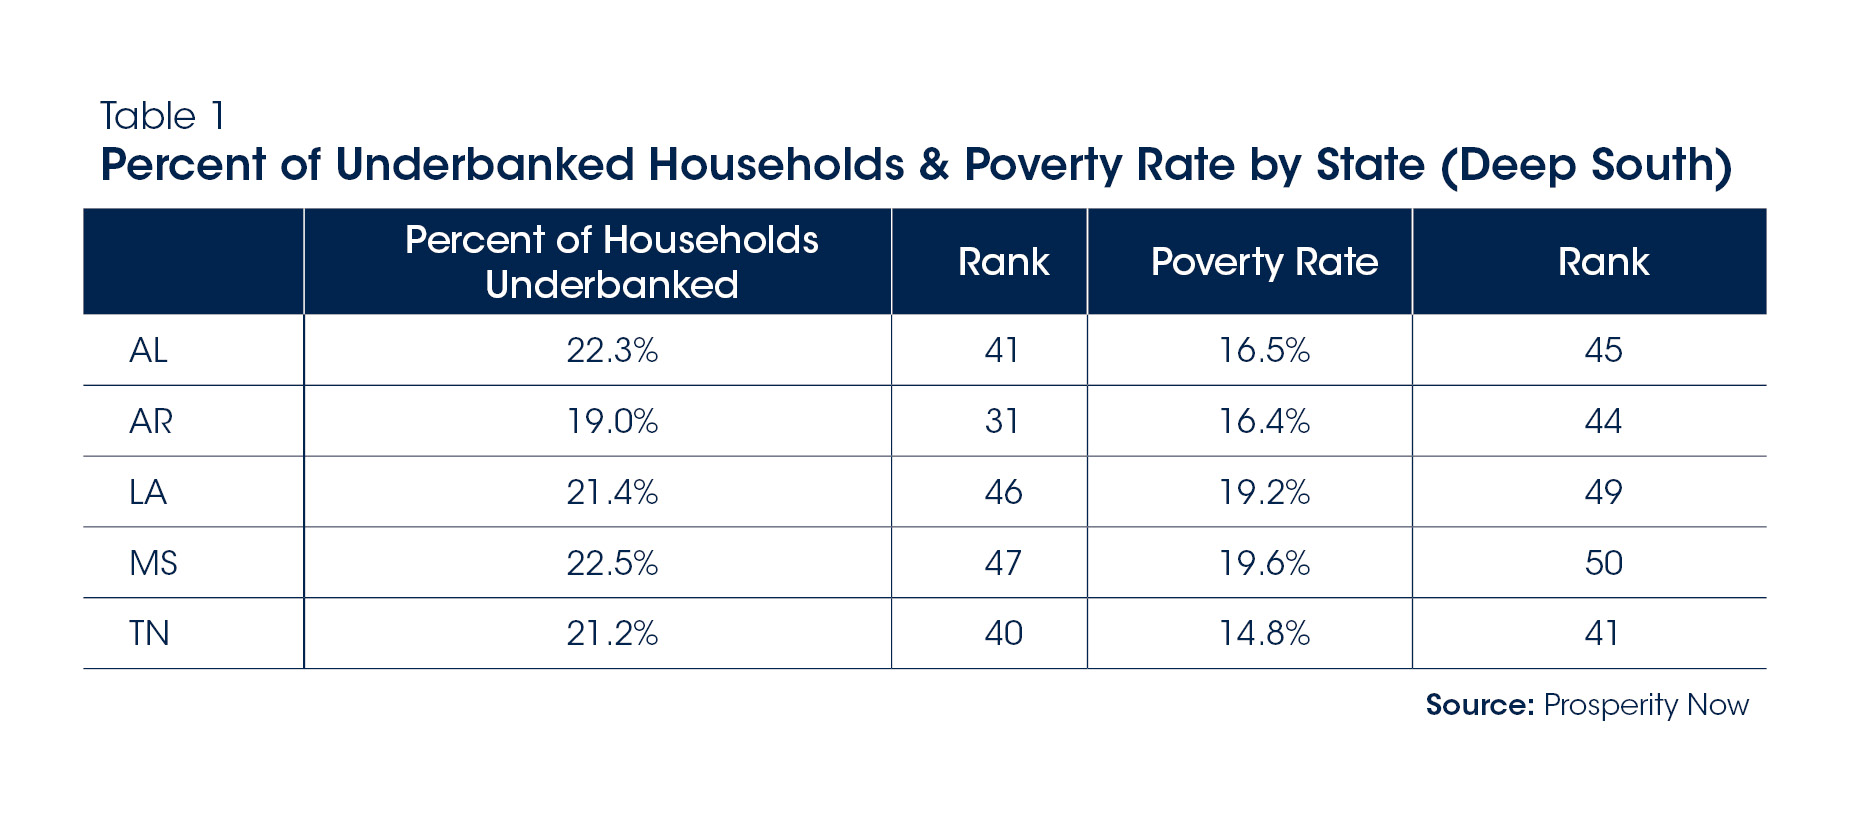 table 1 - Percent of Underbanked Households